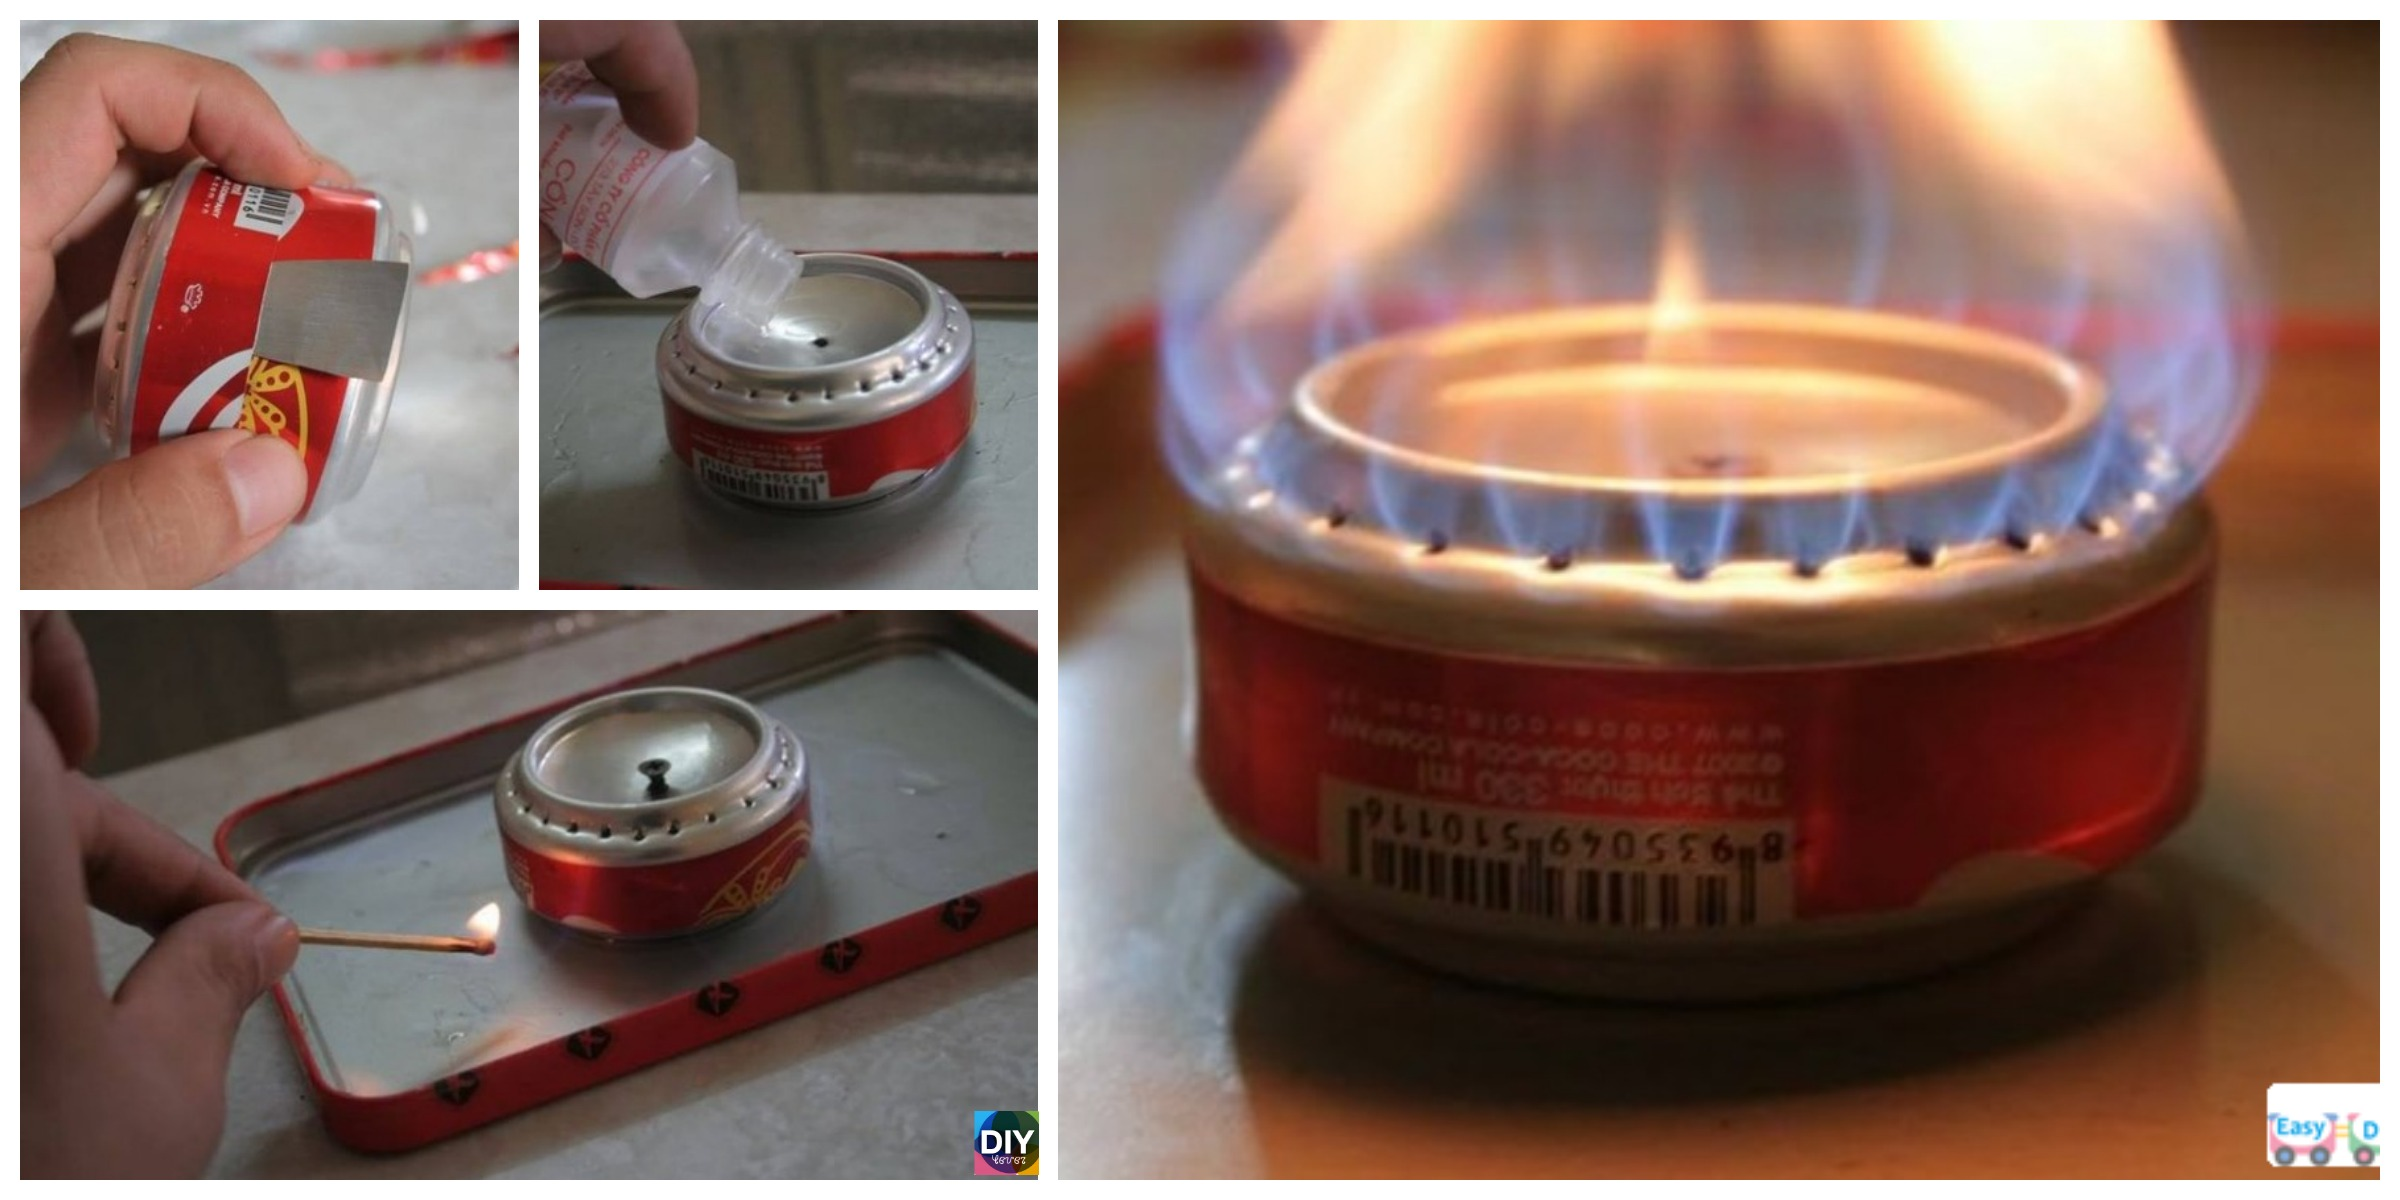 DIY Coke Can Stove for Hiking and Camping